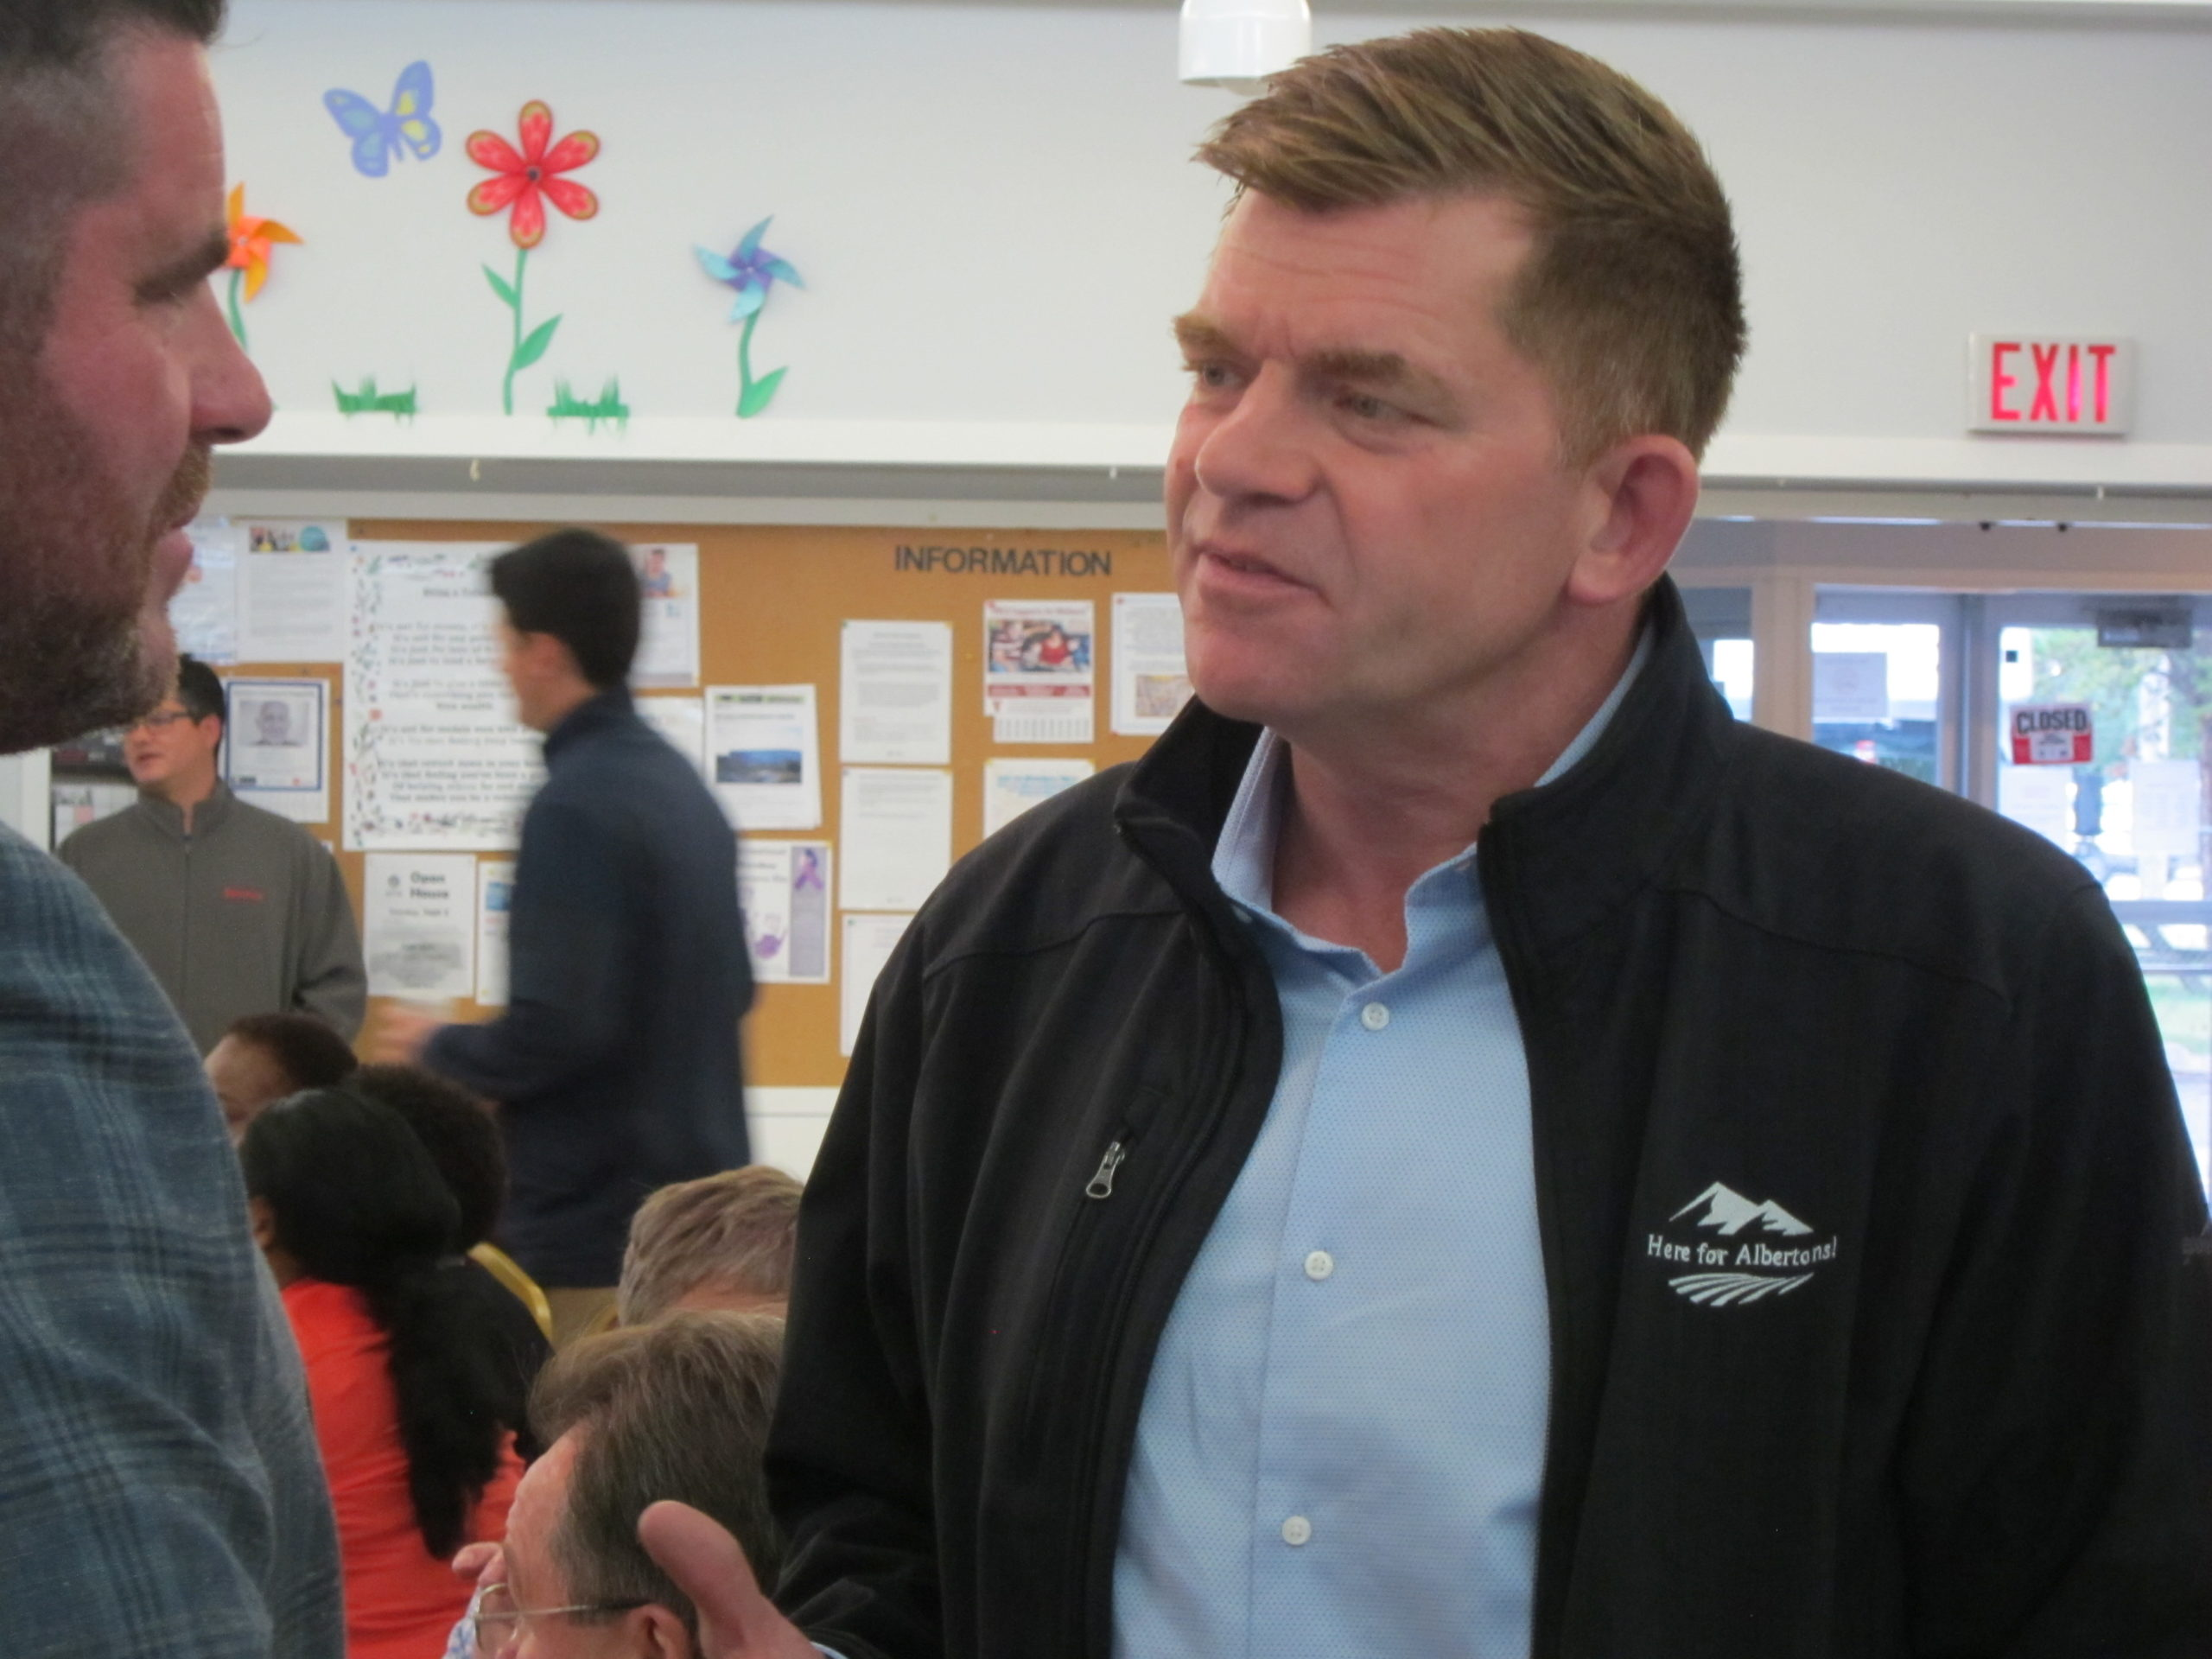 Brian Jean makes First Public Appearance in Fort McMurray Since Start of UCP Leadership Campaign